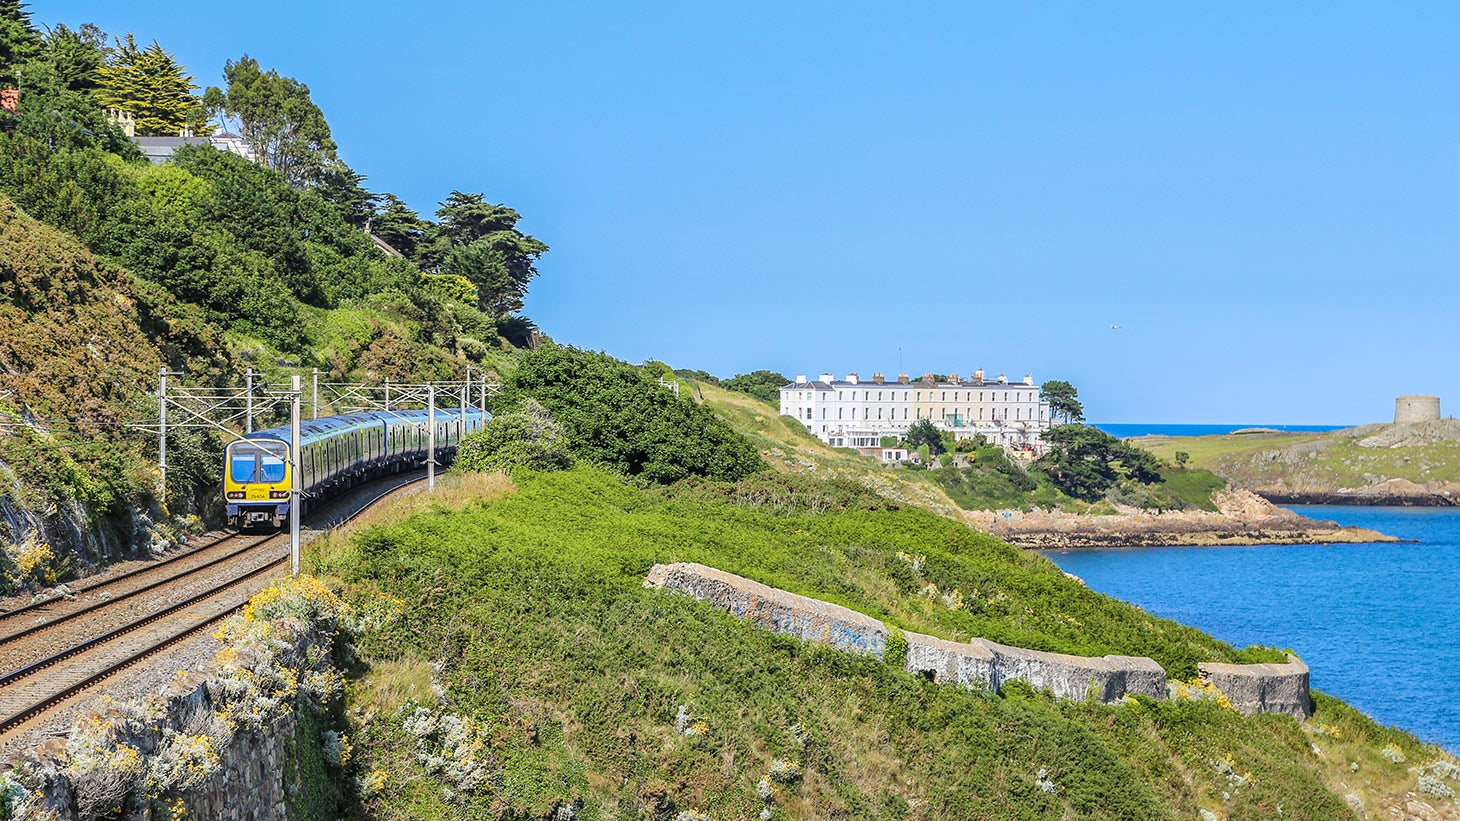 Hop on the Dart and take a visit to Killiney.